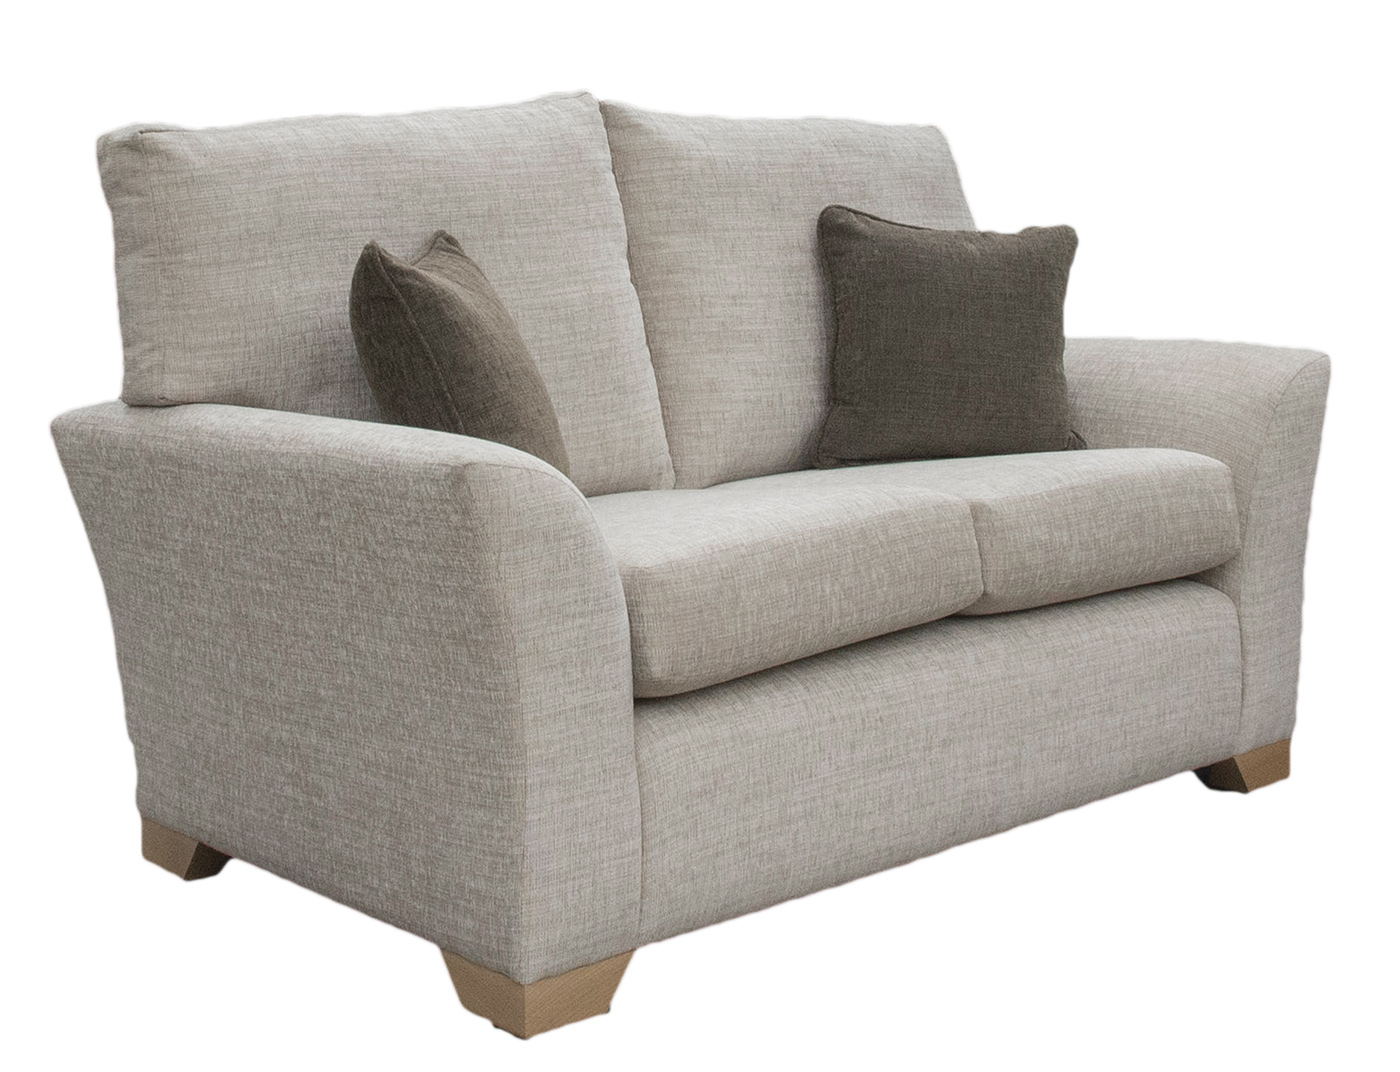 Malton Sofa  Bed 4ft6 in Corrine Beige Bronze CollectionFabric